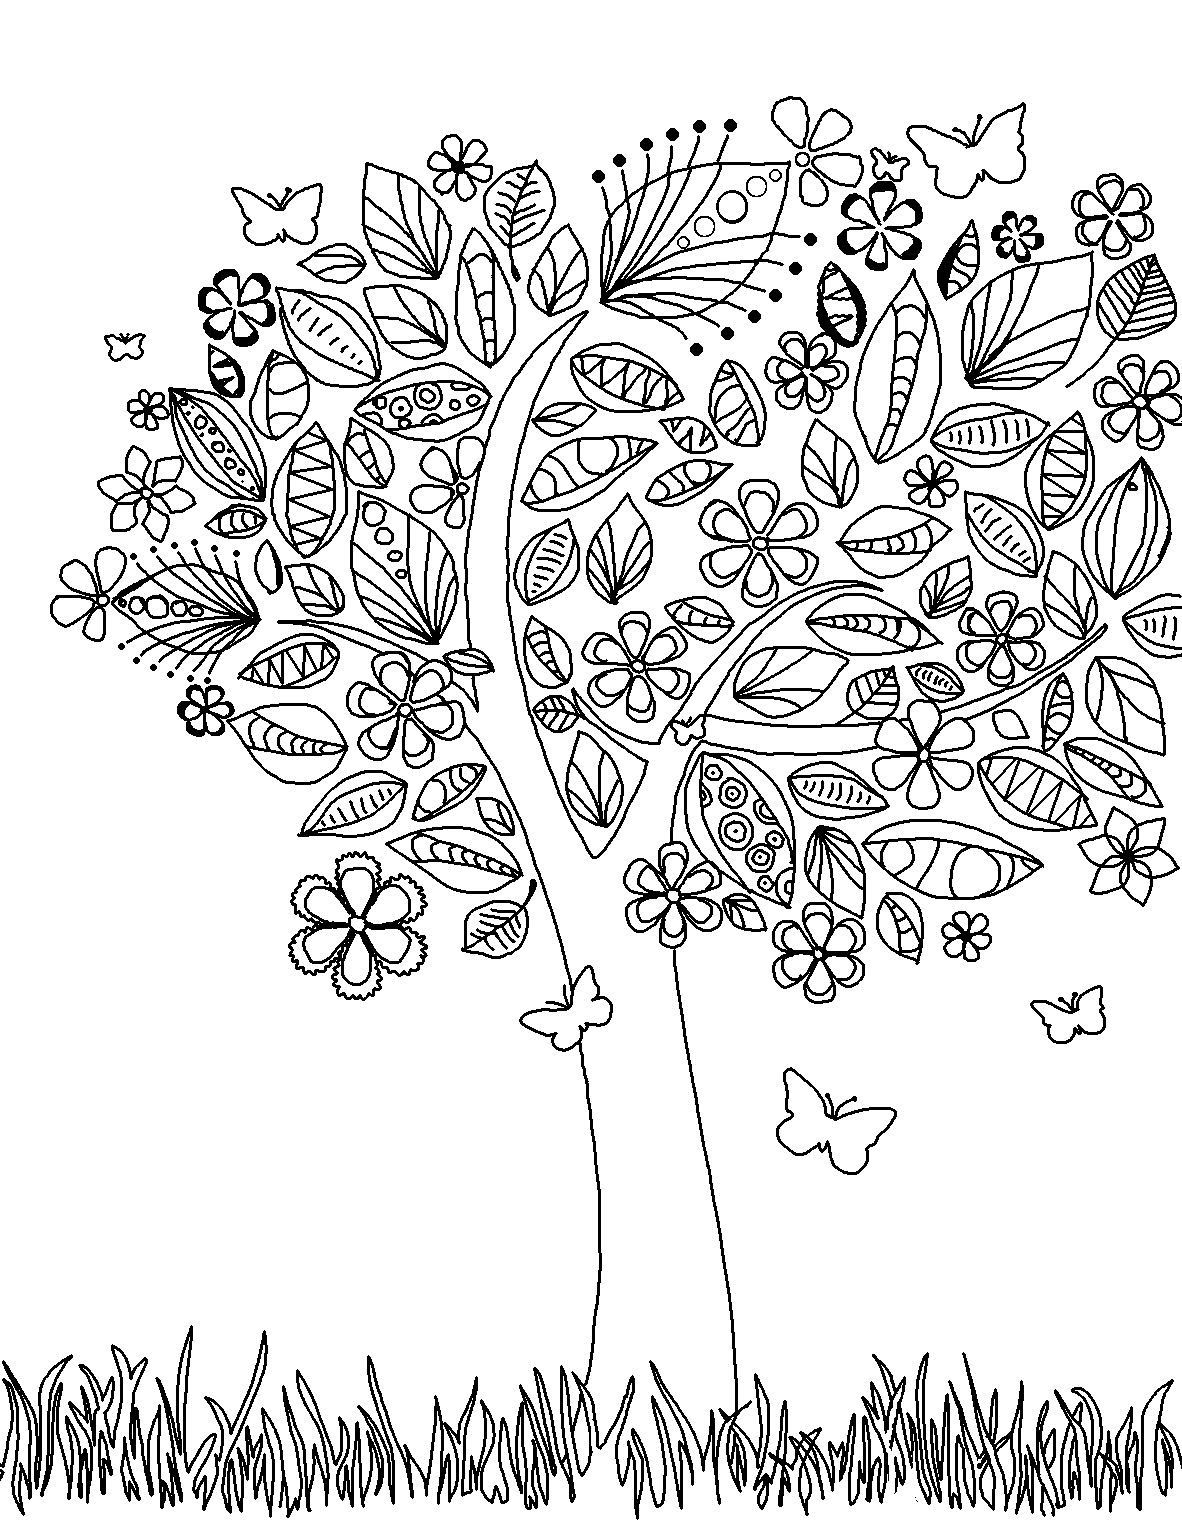 elephant pages tree coloring page - Print Coloring Pages For Adults